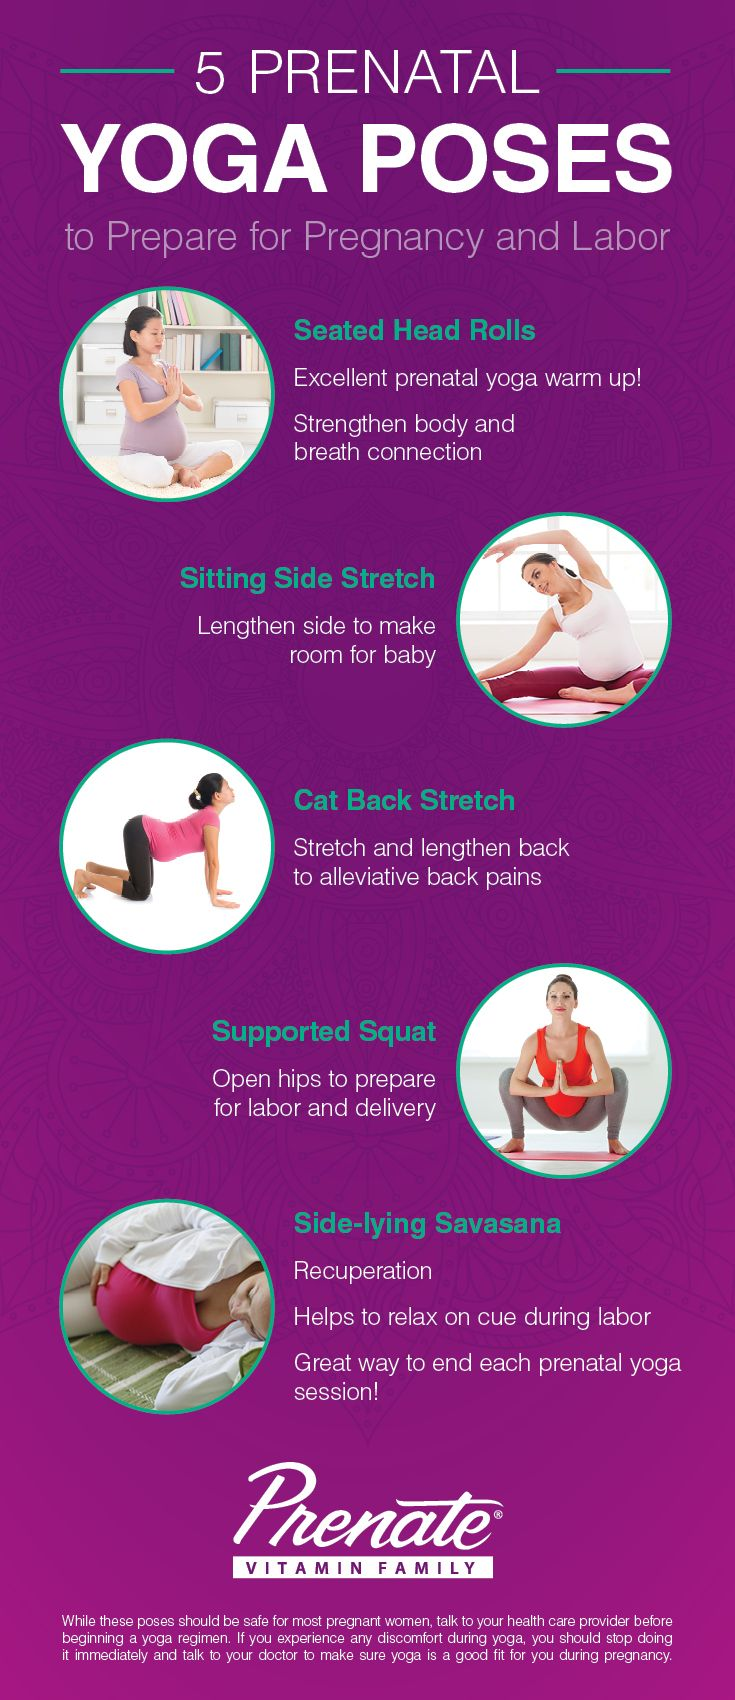 Tuesday Tip! Yoga is an excellent way to stay in shape, control your weight gain and relieve stress during pregnancy. Check out our 5 favorite prenatal yoga poses. #prenatal #yoga #pregnancytips https://prenatepregnancy.wordpress.com/2016/01/18/prenatal-yoga-for-pregnancy-and-labor/